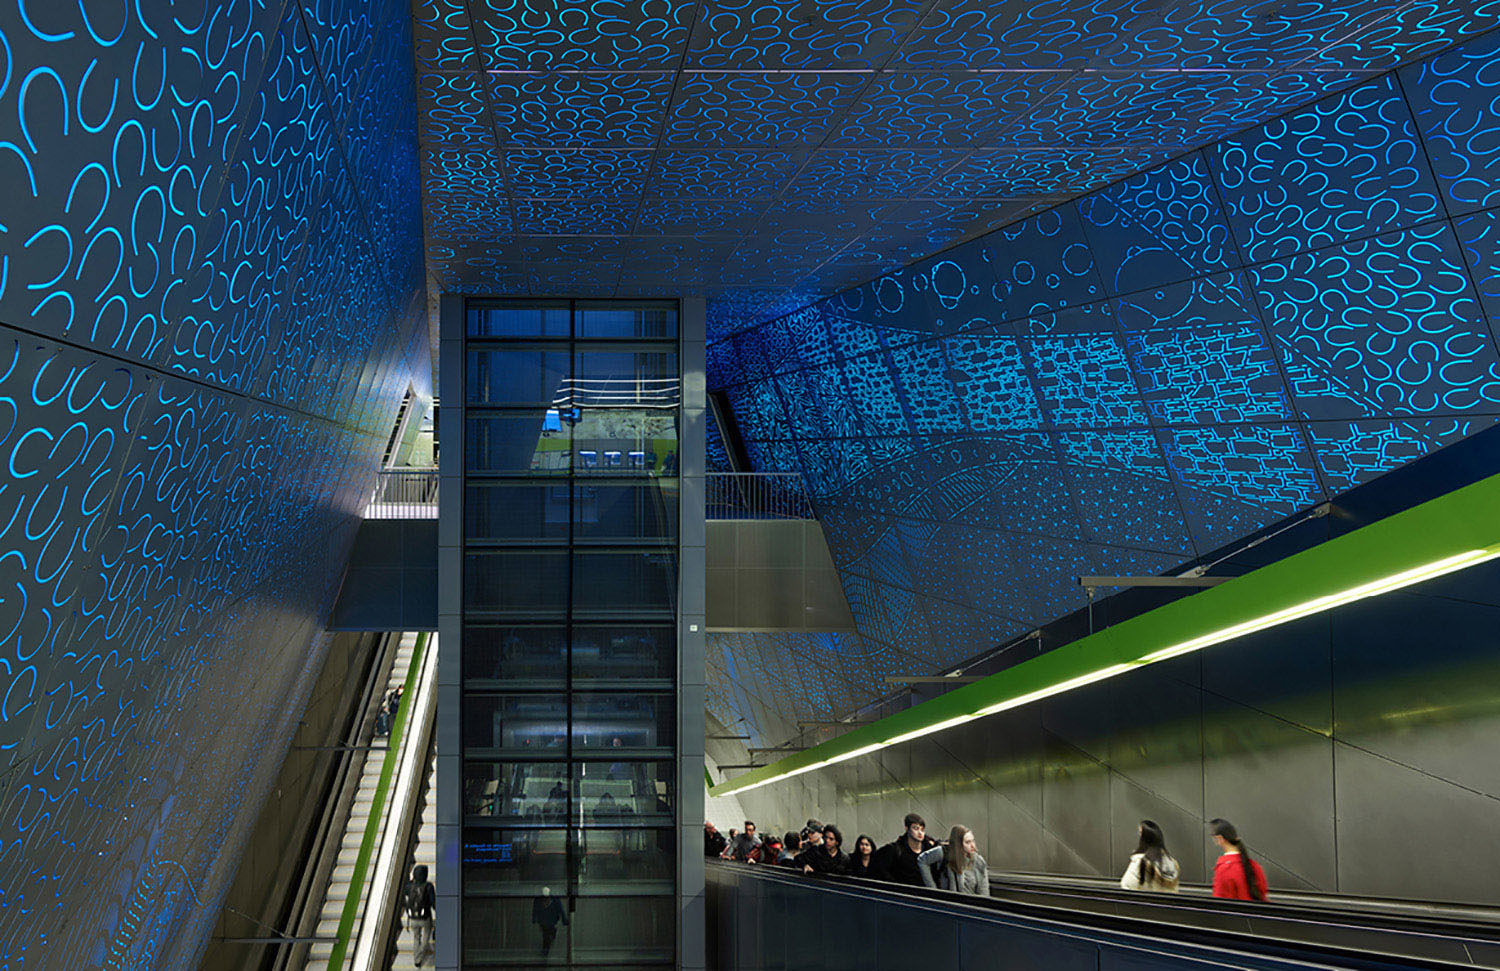 At the heart of the station experience, the escalators and glass elevator pass through a 55-foot high central chamber, one of the highest interior volumes in the Seattle. Through a close collaboration, the architecture seamlessly merges with Leo Saul Berk Kevin Scott